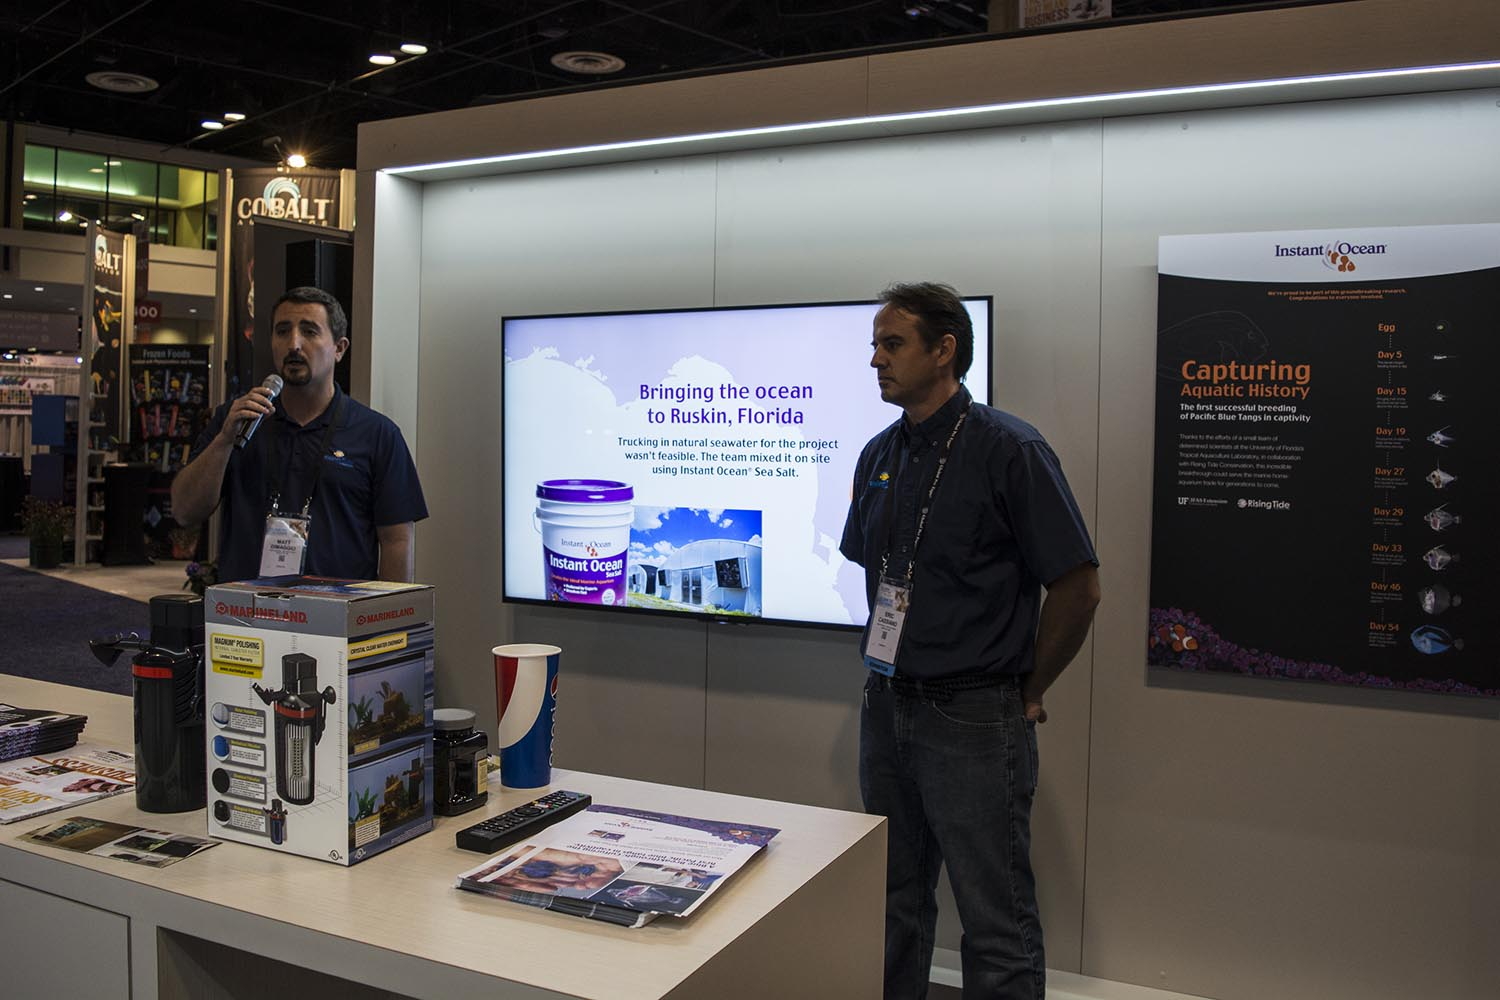 Matt DiMaggio and Eric Cassiano of University of Florida, both of whom worked on the first successful rearing of the Blue or Hippo Tang as part of Rising Tide's research, presented a brief summary of their work at the Spectrum Brands booth.